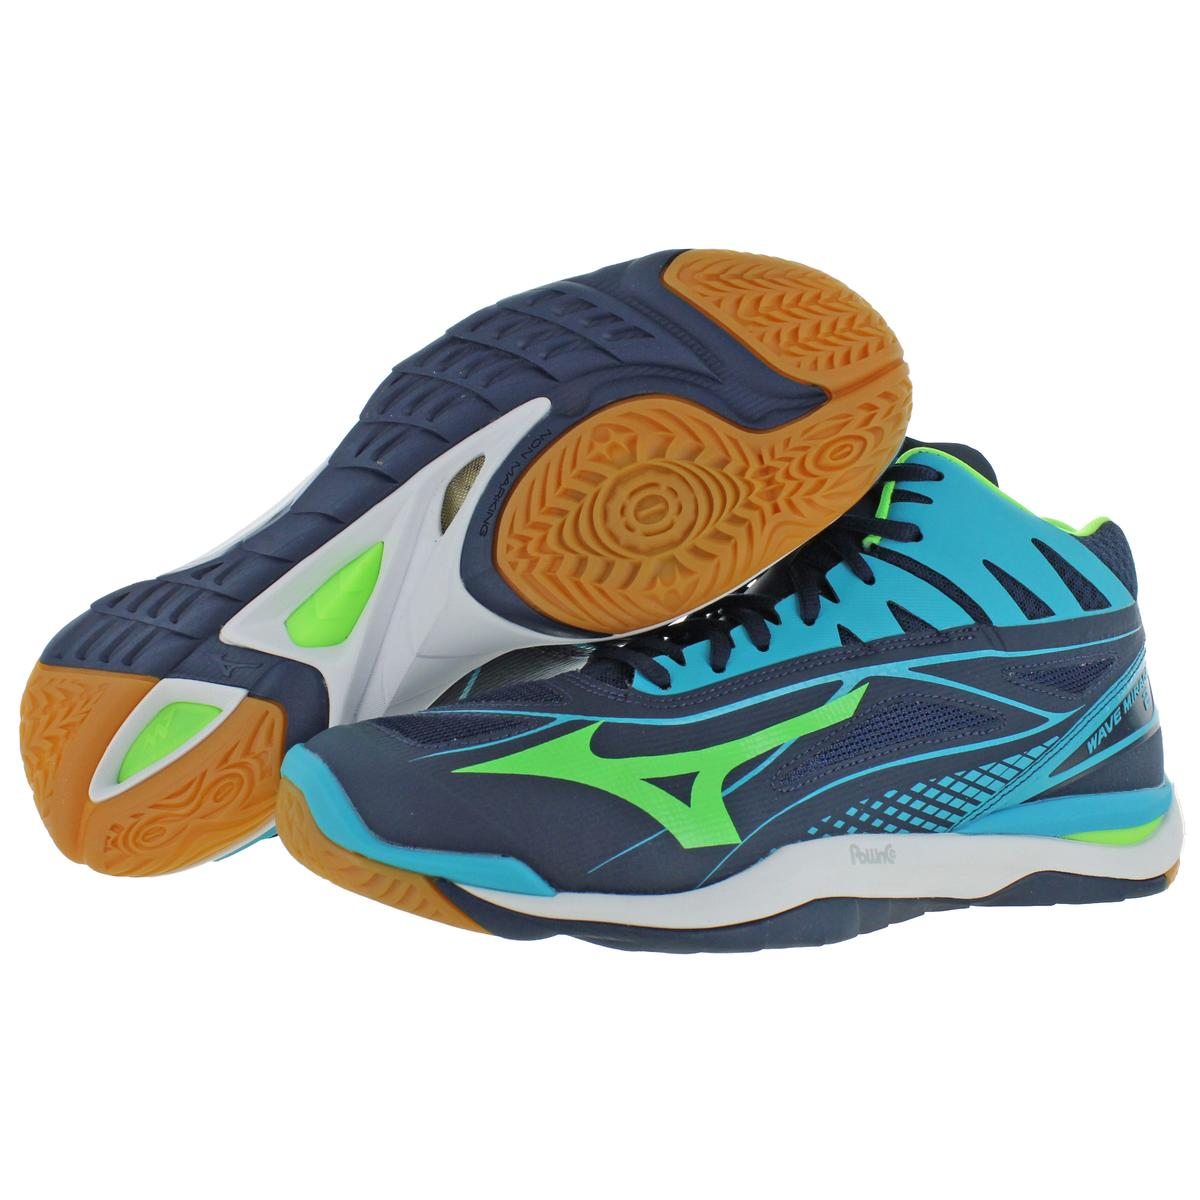 Mizuno-Mens-Wave-Mirage-2-Mid-Lace-Up-Mid-Top-Handball-Sneakers-Shoes-BHFO-9977 thumbnail 9